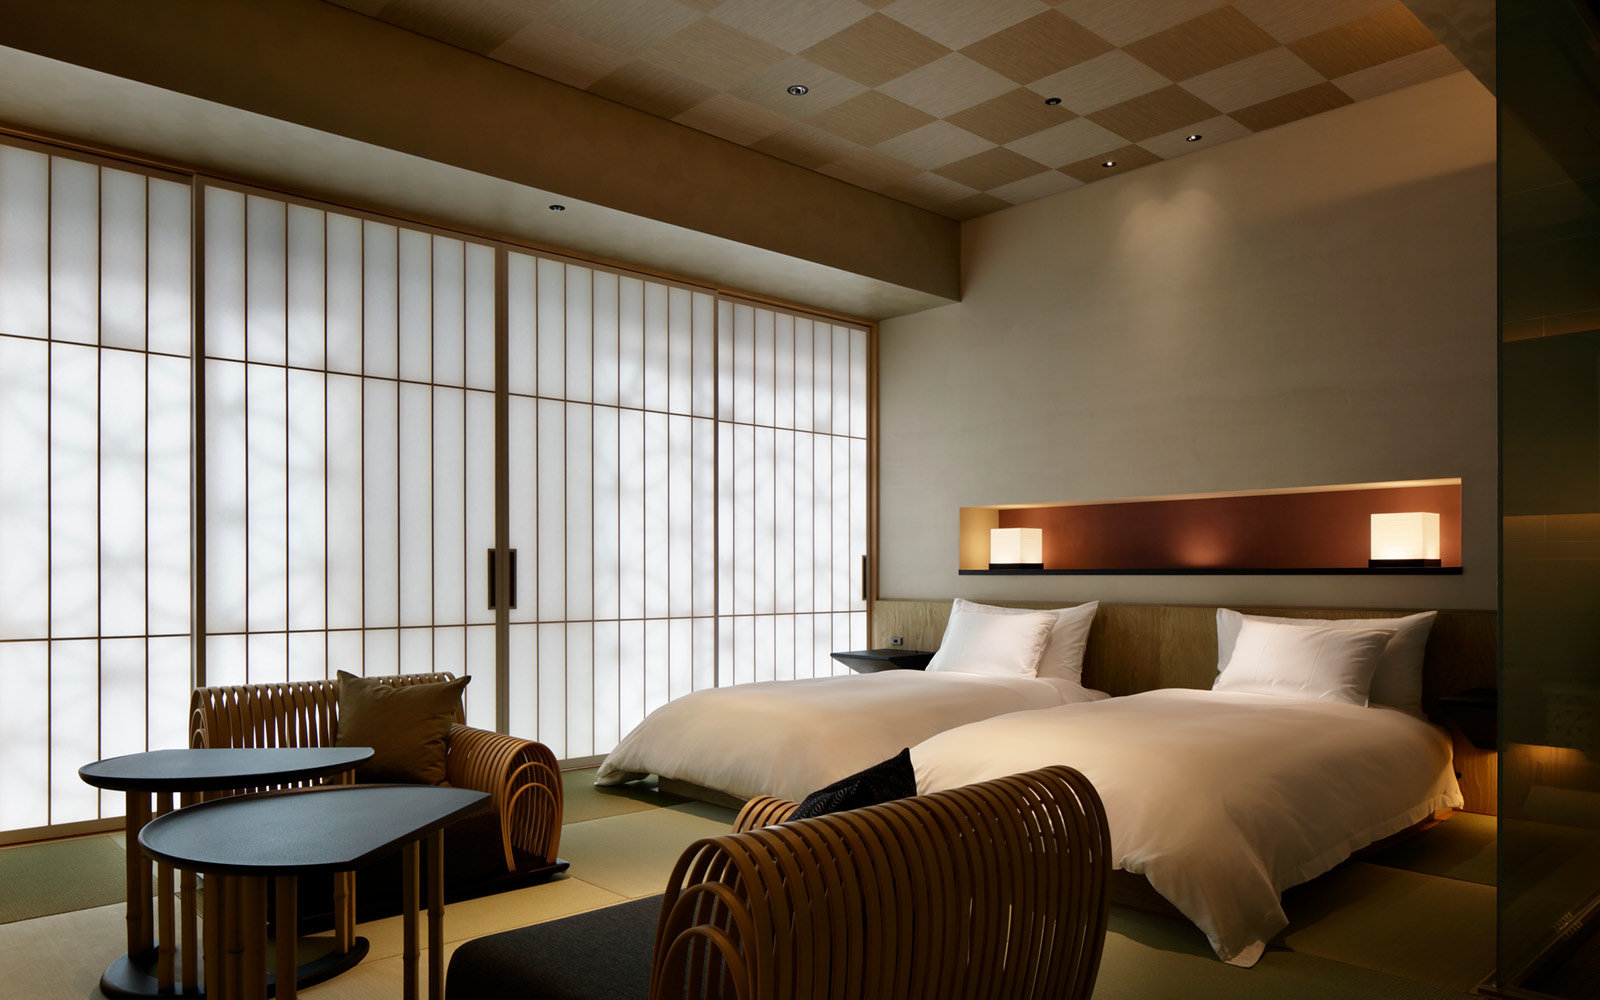 Best Travel System 2020 The Best Tokyo Hotels to Book Now for the 2020 Olympics | Travel +